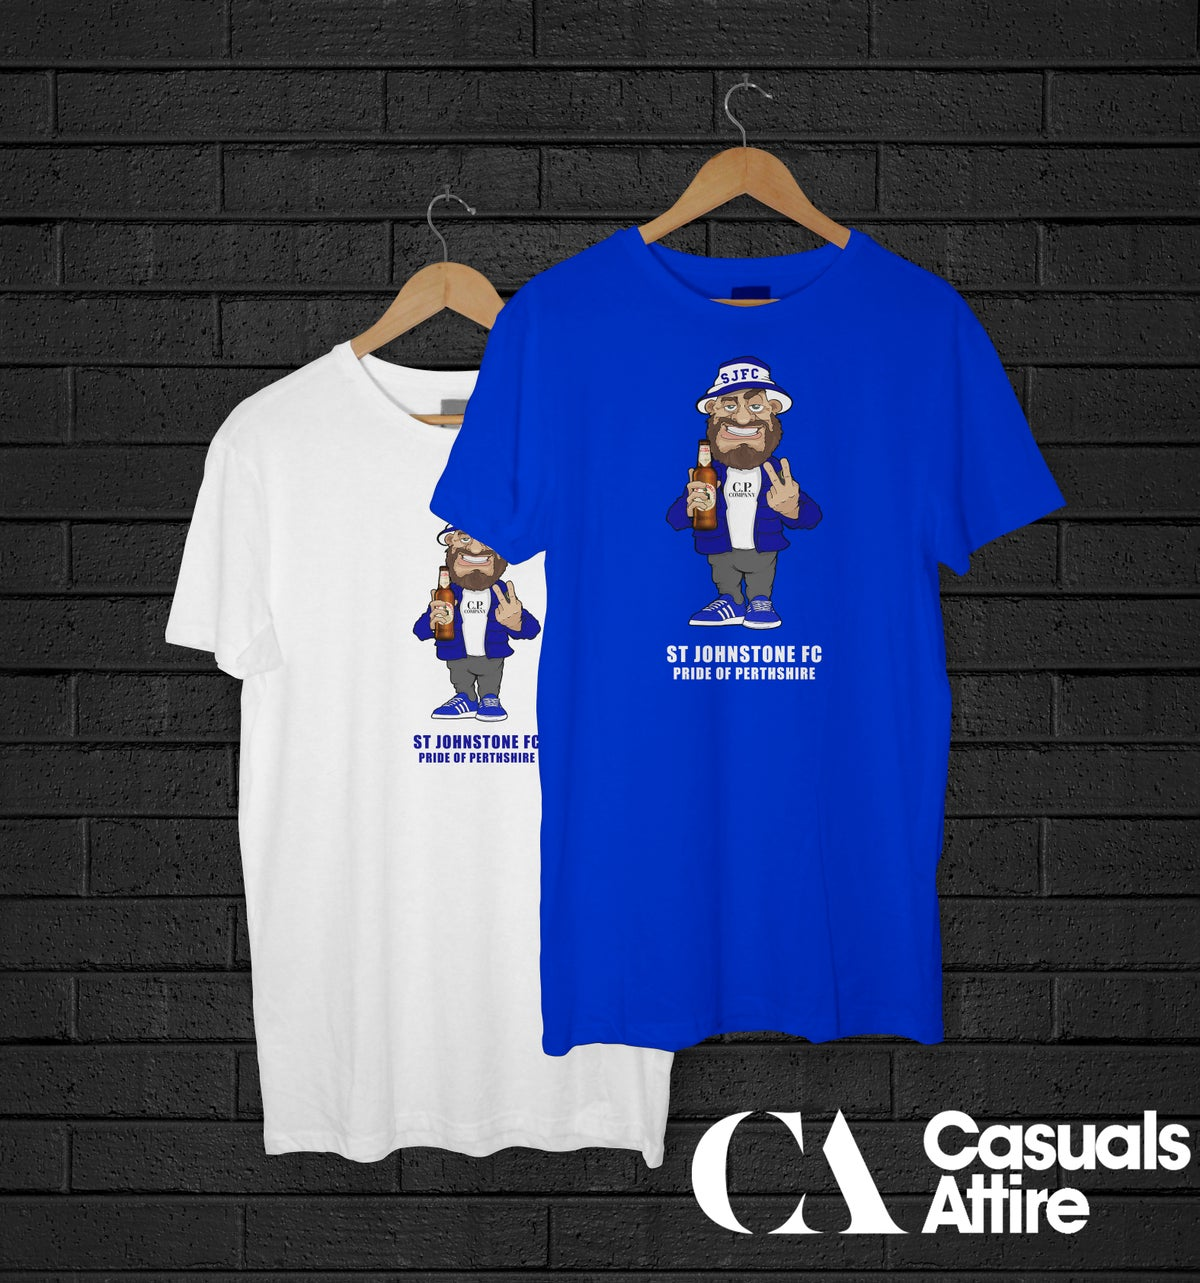 St Johnstone Pride of Perthshire Football Casual Holding Beer T-shirts.